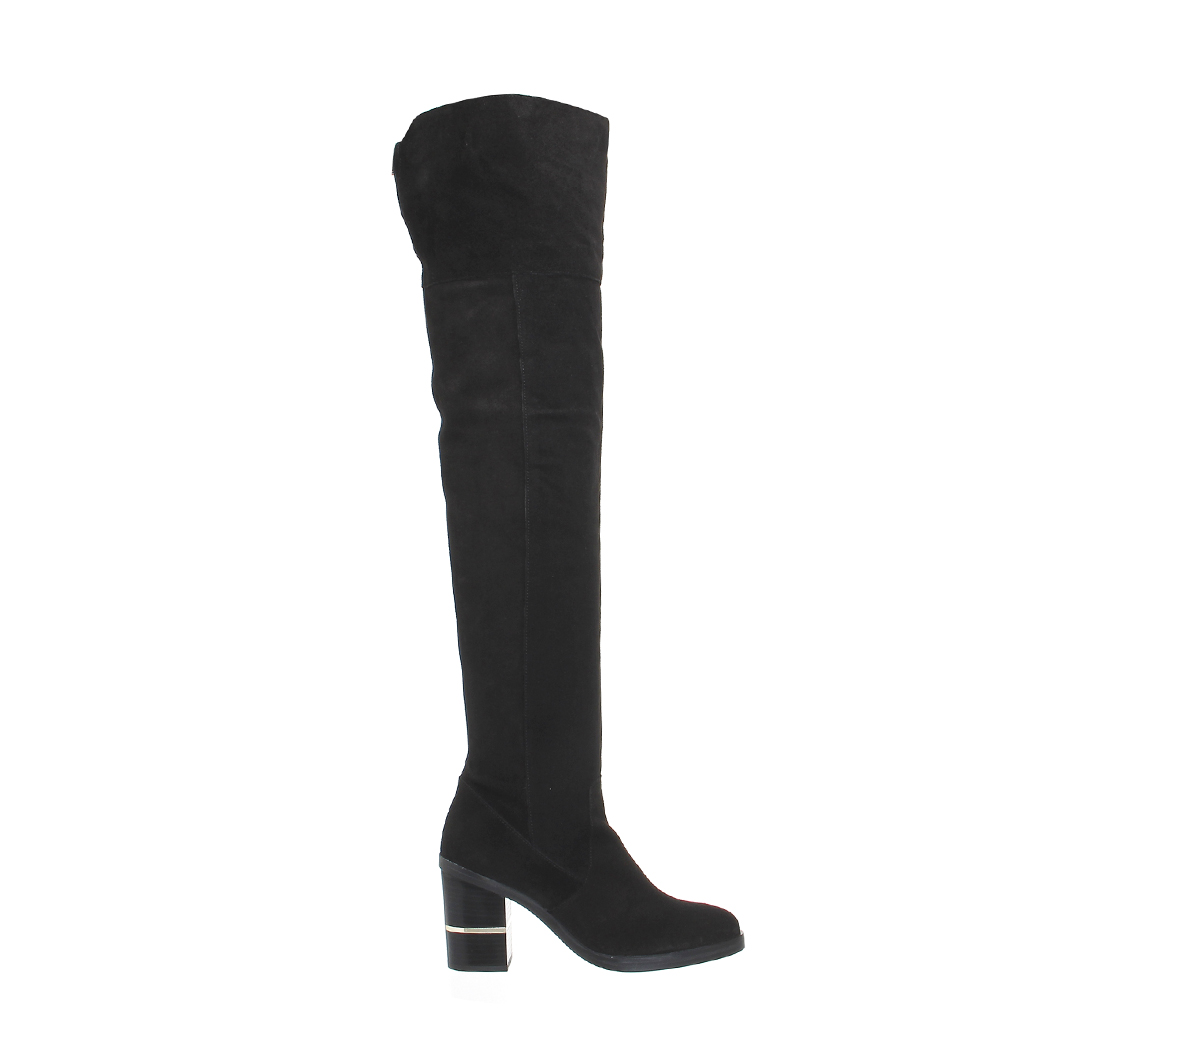 bf5267fe3aa Womens Office Elemental Over The Knee Boots Black Suede Boots